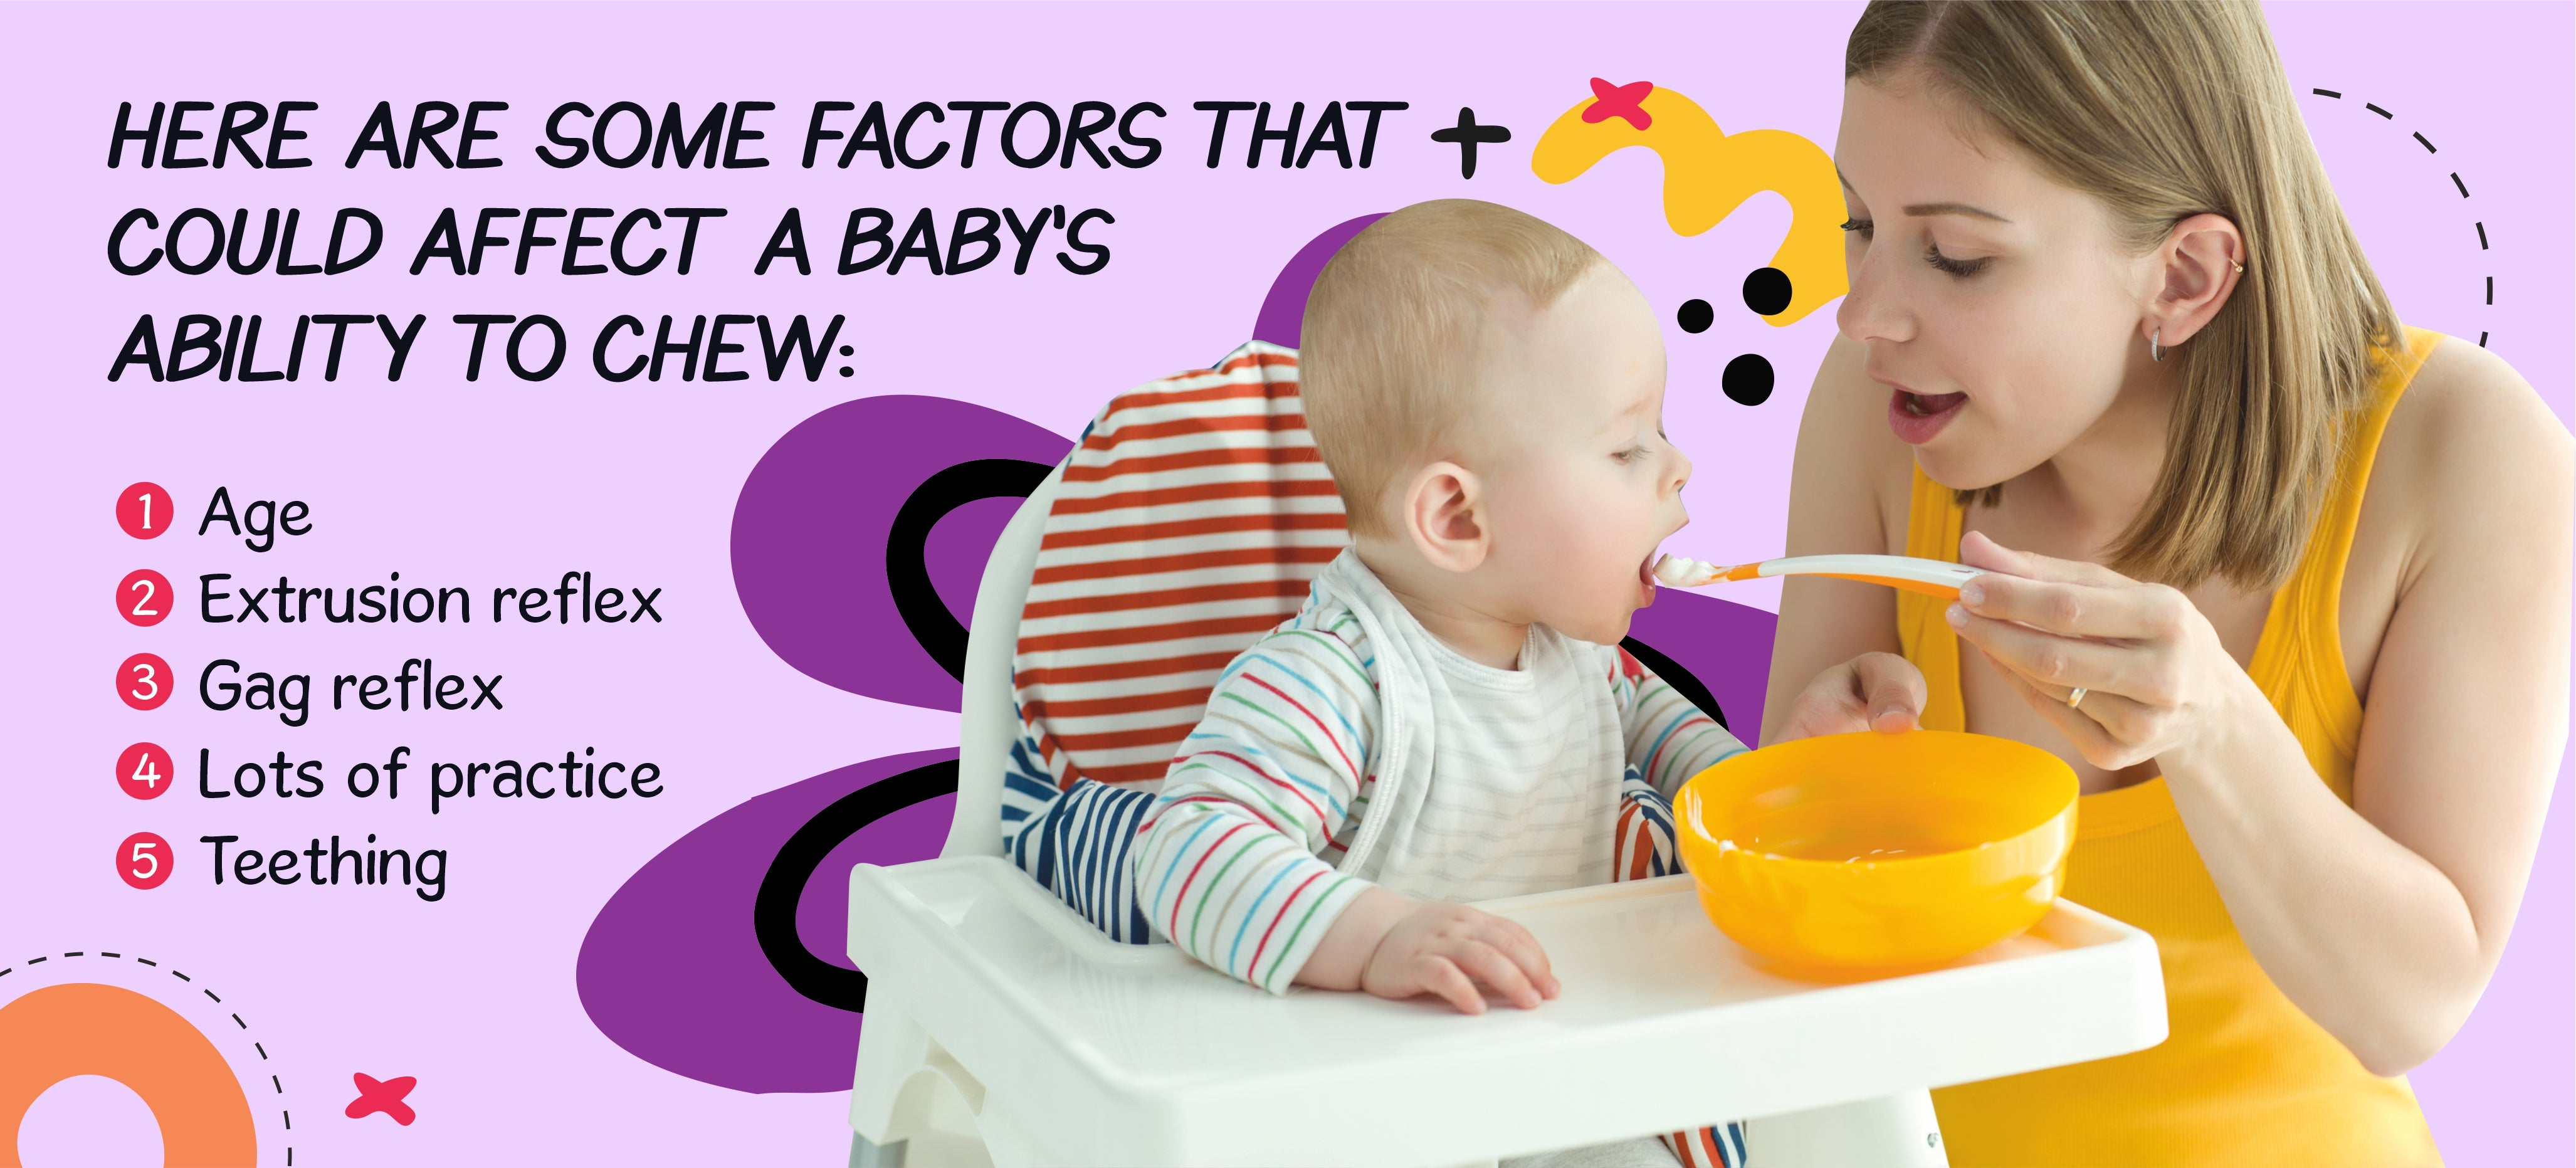 Here are some factors that could affect a baby's ability to chew (age, extrusion reflex, gag reflex, lots of practice, teetching)